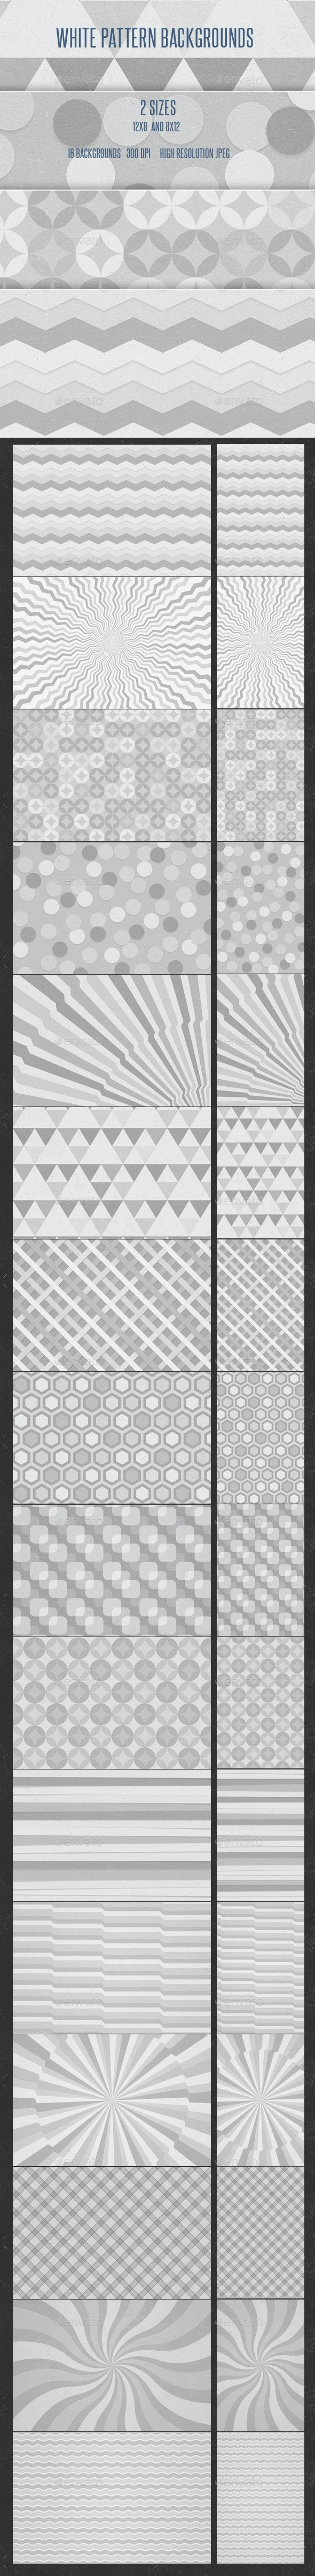 White Patterns Backgrounds - Patterns Backgrounds